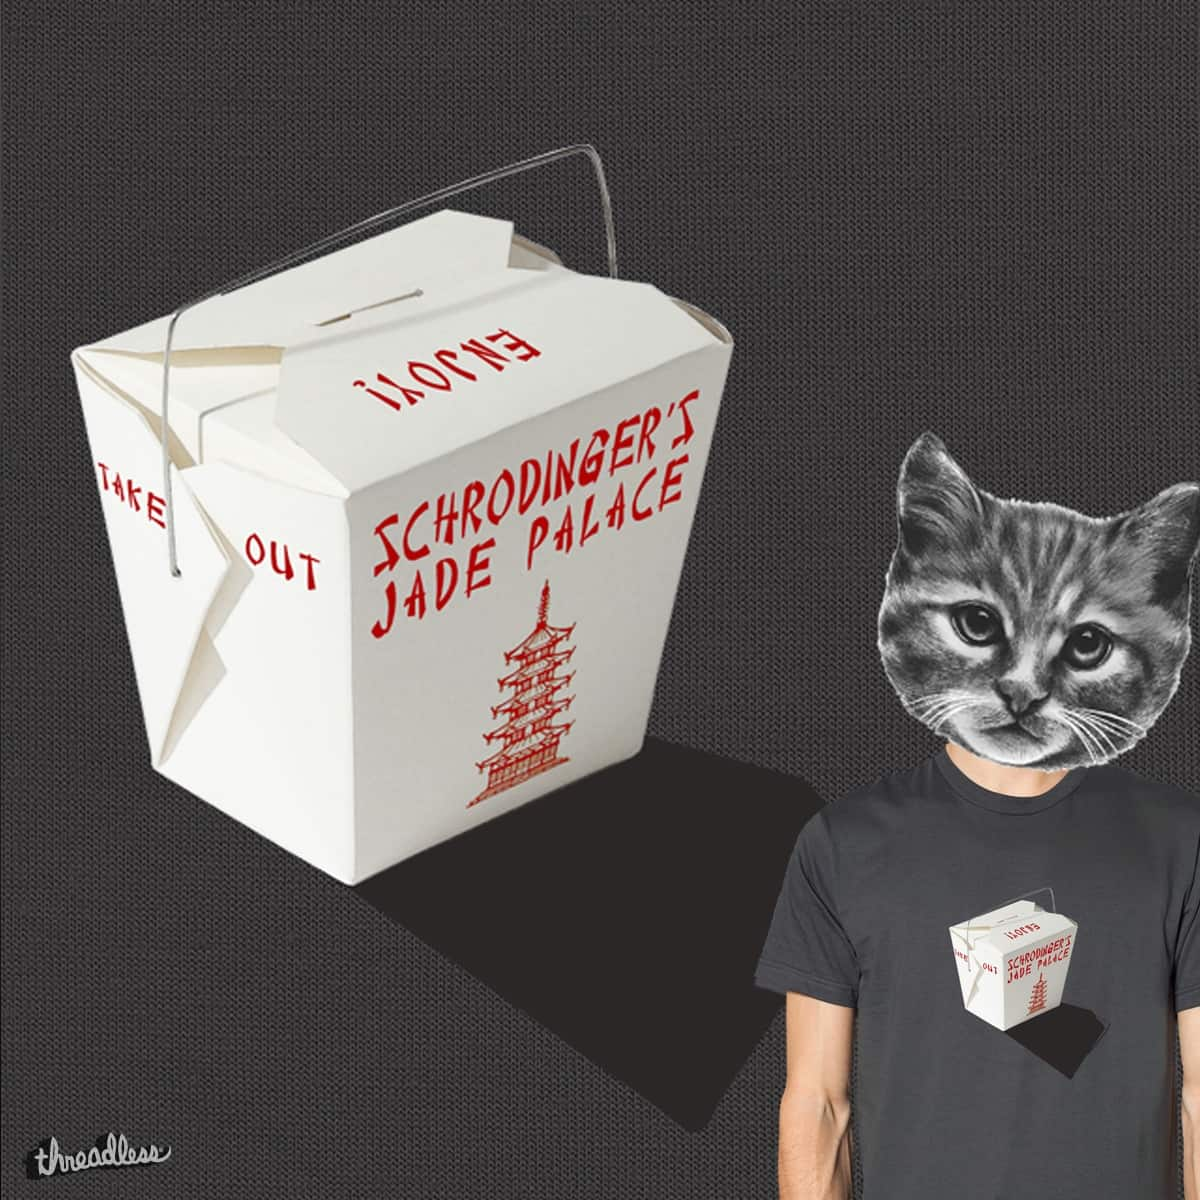 Schrodinger's theory by more.than.ordinary on Threadless